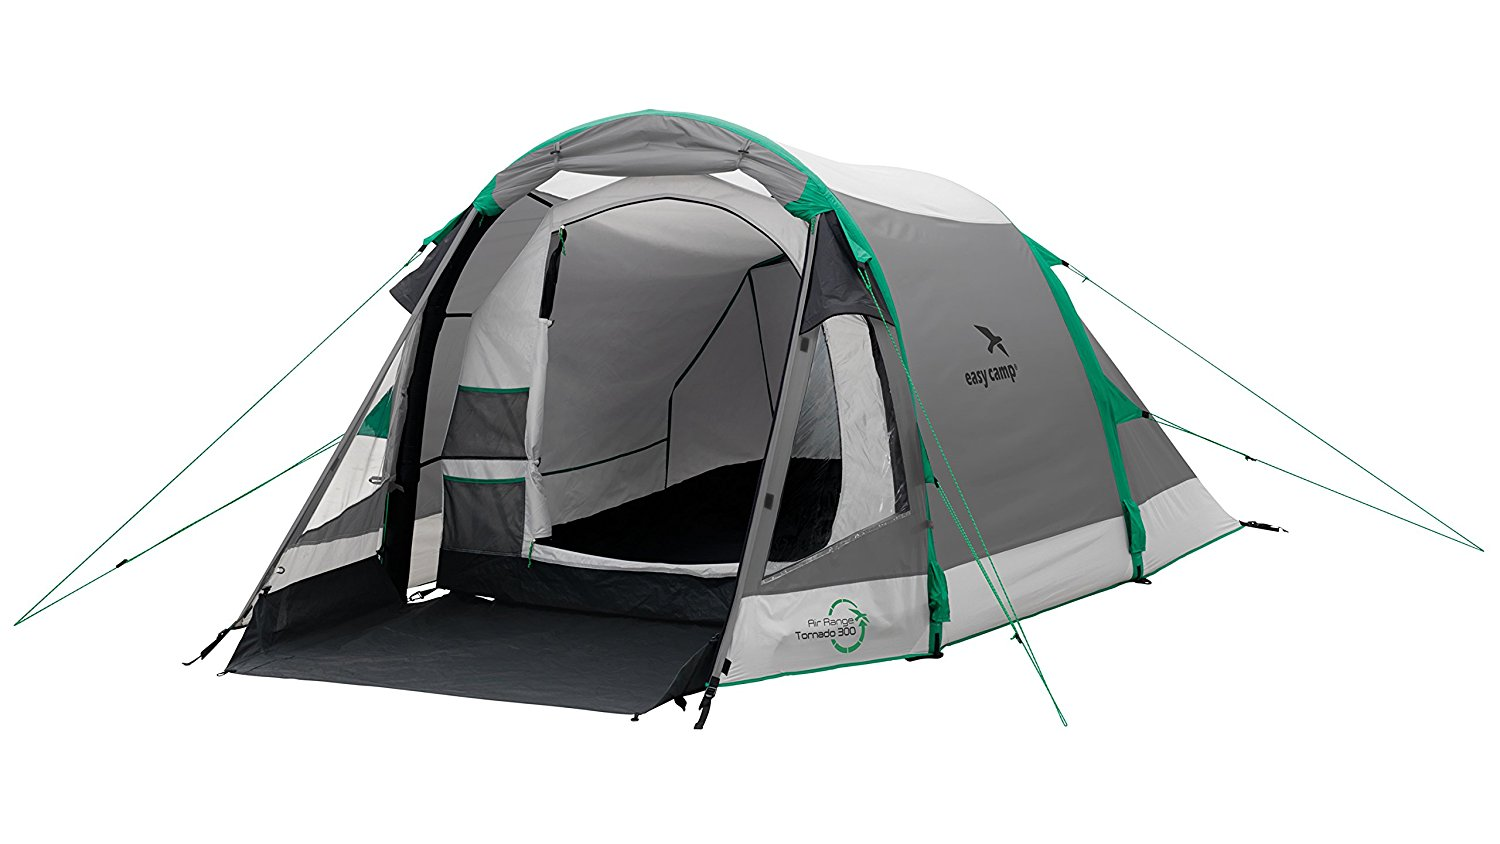 Kelty Mach  sc 1 st  GearWeAre.com & Best Inflatable Tents Reviewed u0026 Rated in 2018 | GearWeAre